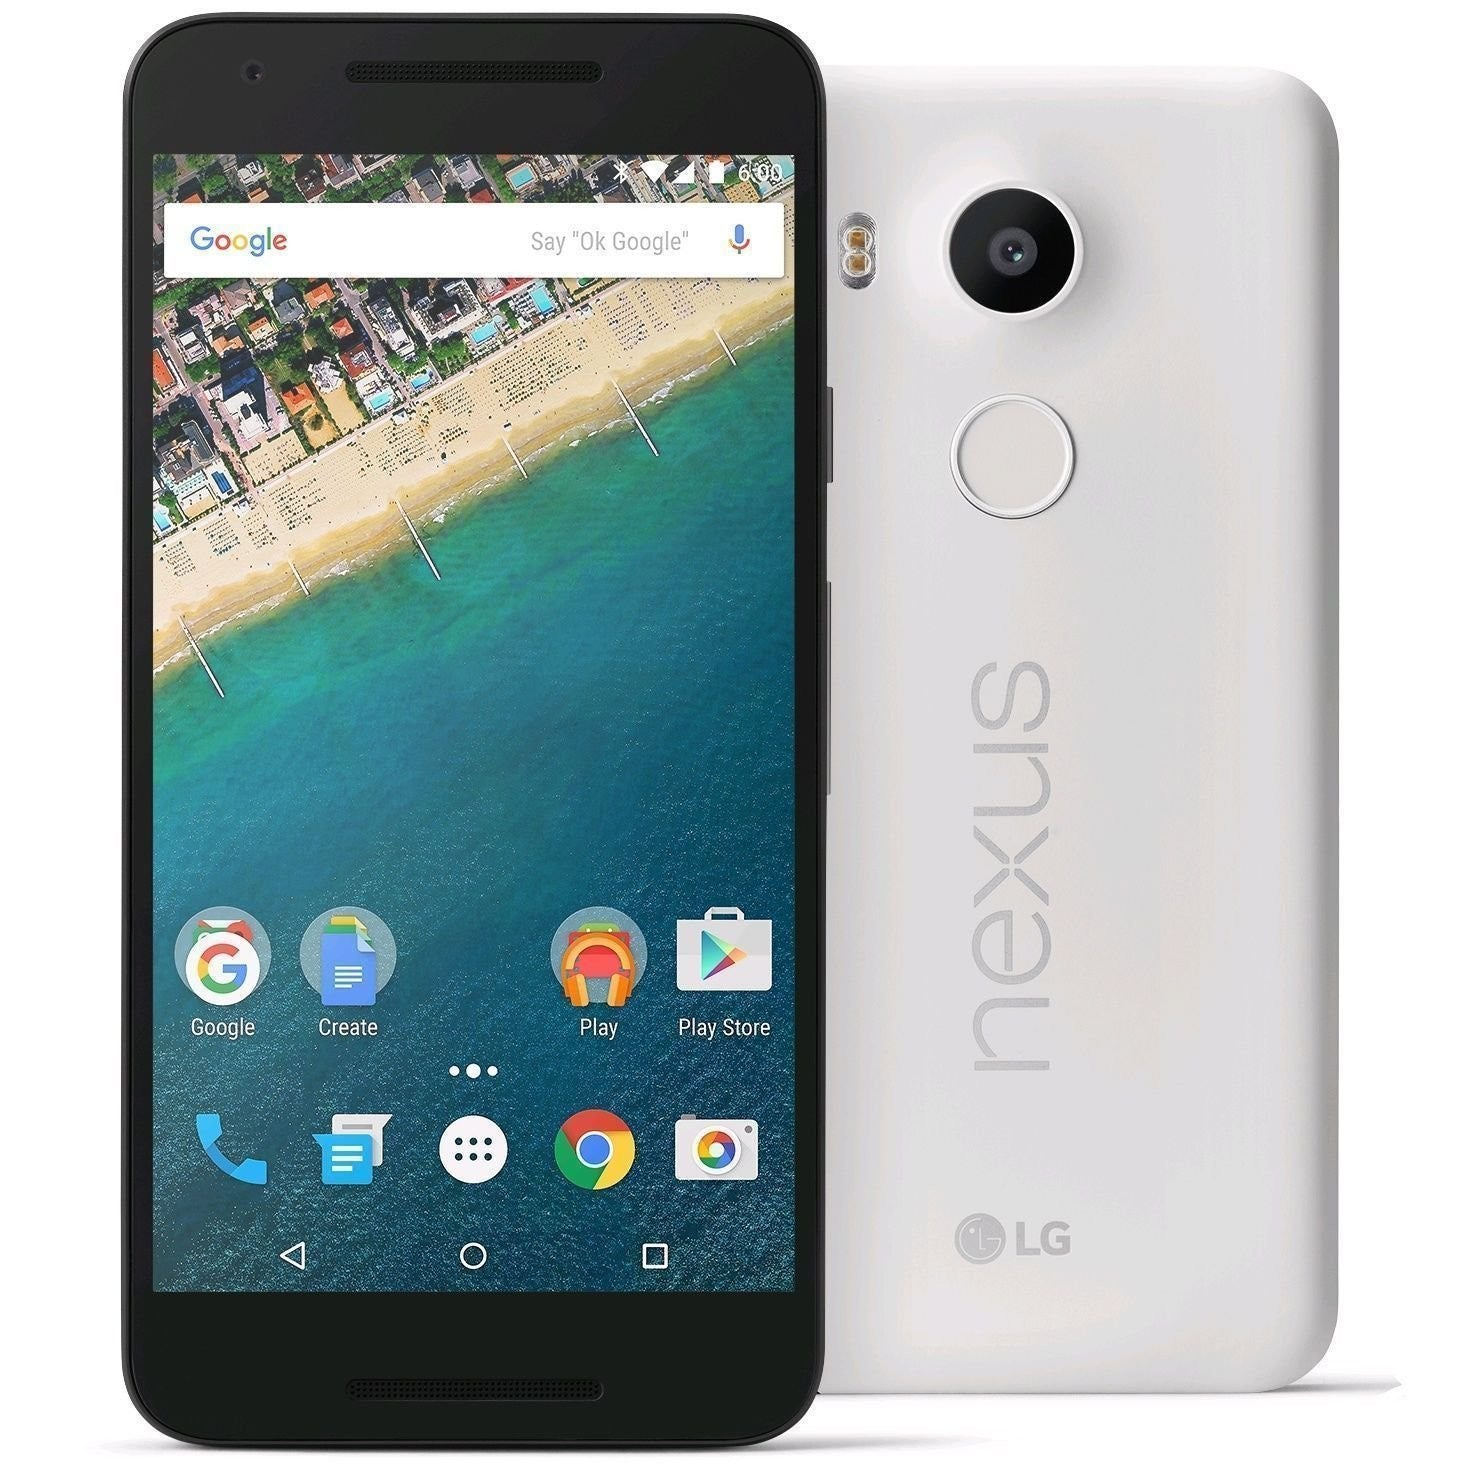 Lg Nexus 5 X Unlocked White, 32 Gb Storage...